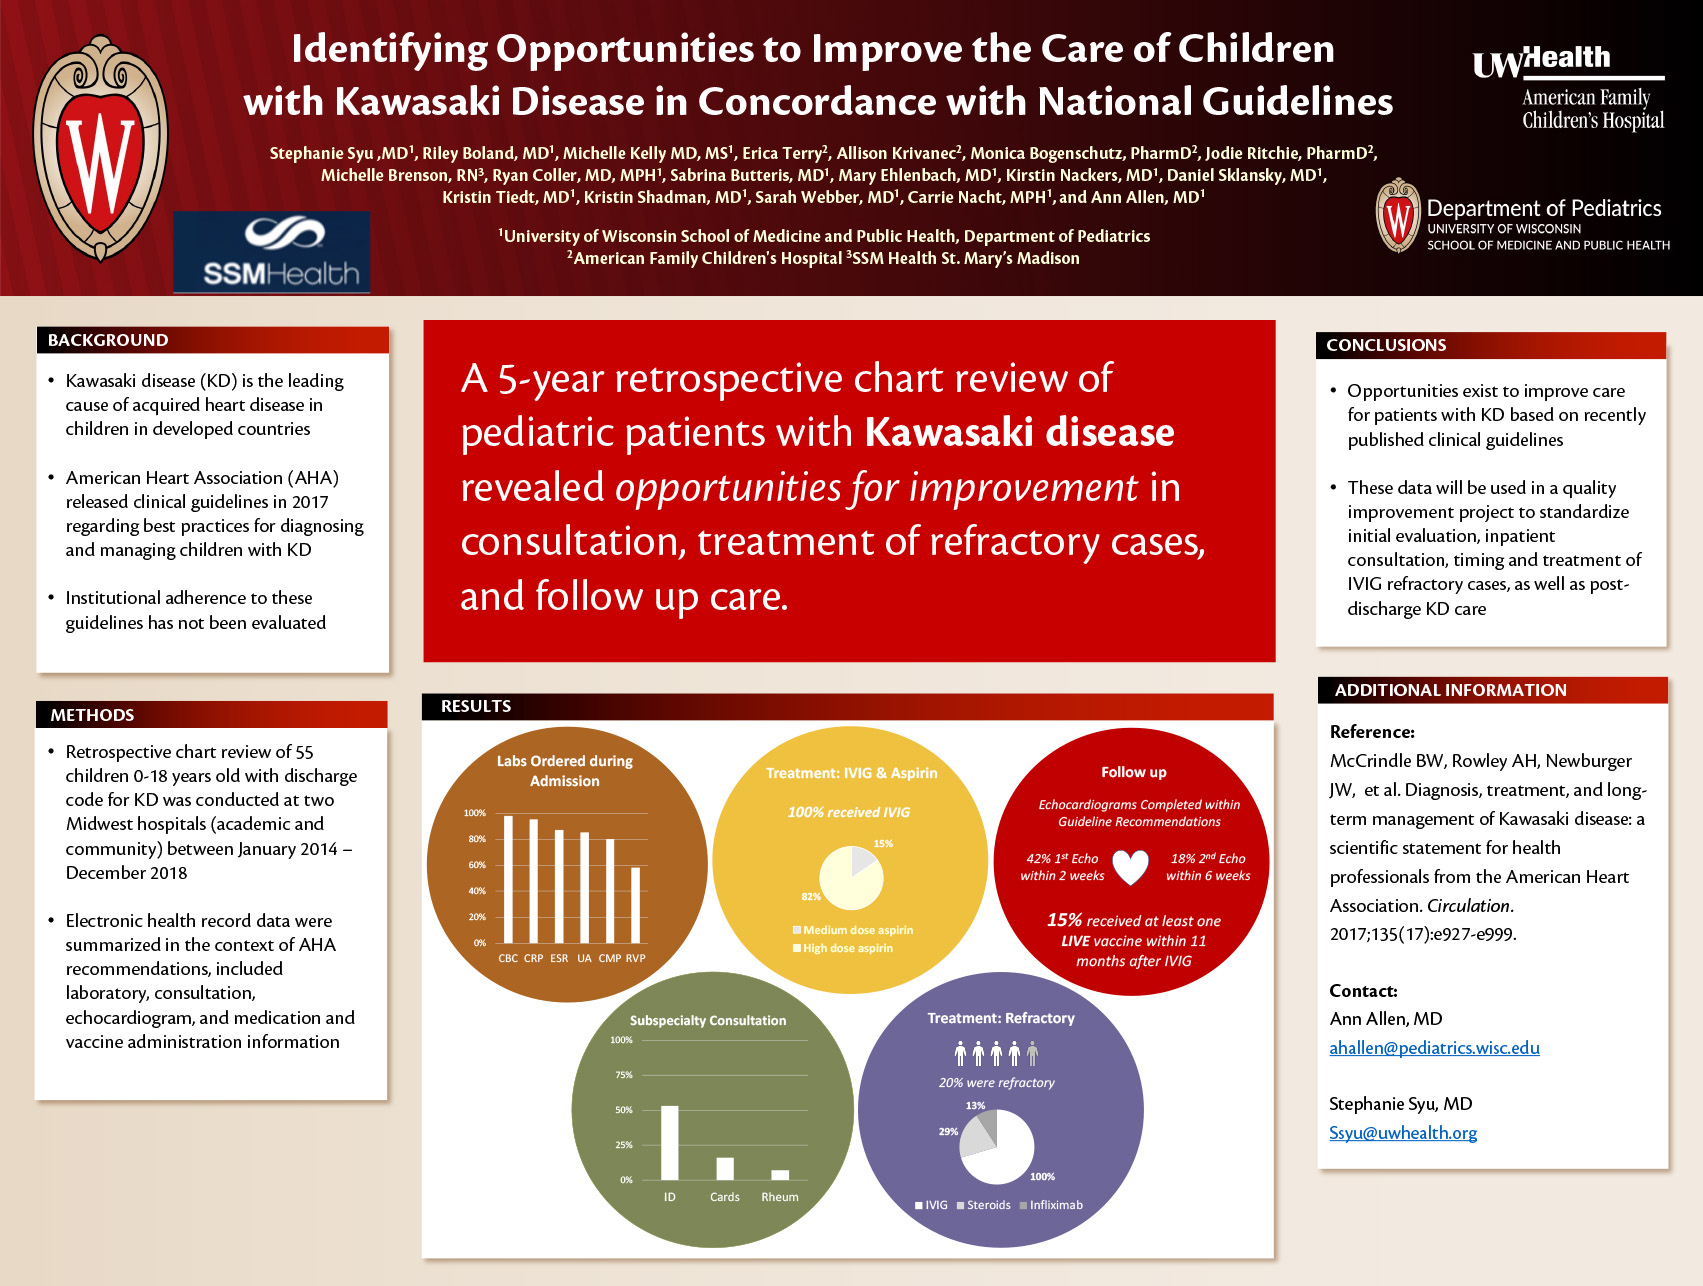 Identifying opportunities to improve the care of children with Kawasaki Disease in concordance with national guidelines poster image